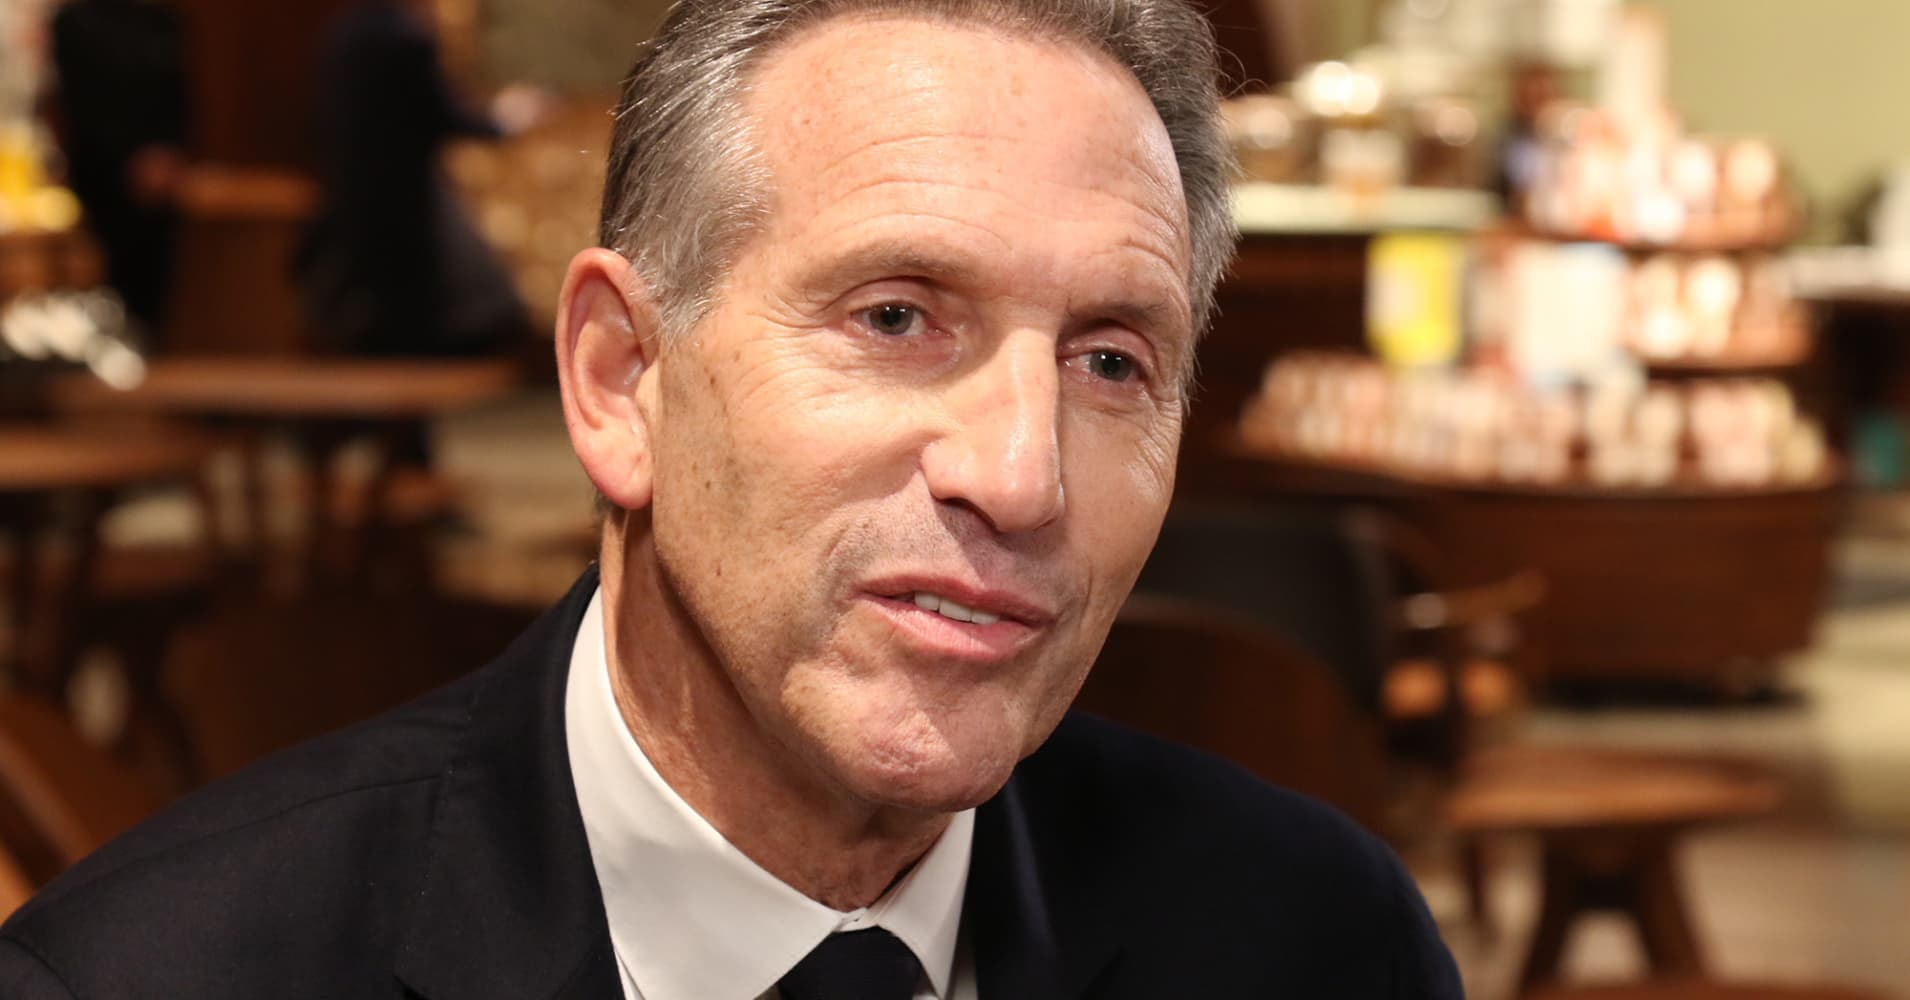 Ex-Starbucks boss Howard Schultz's presidential roll-out went badly